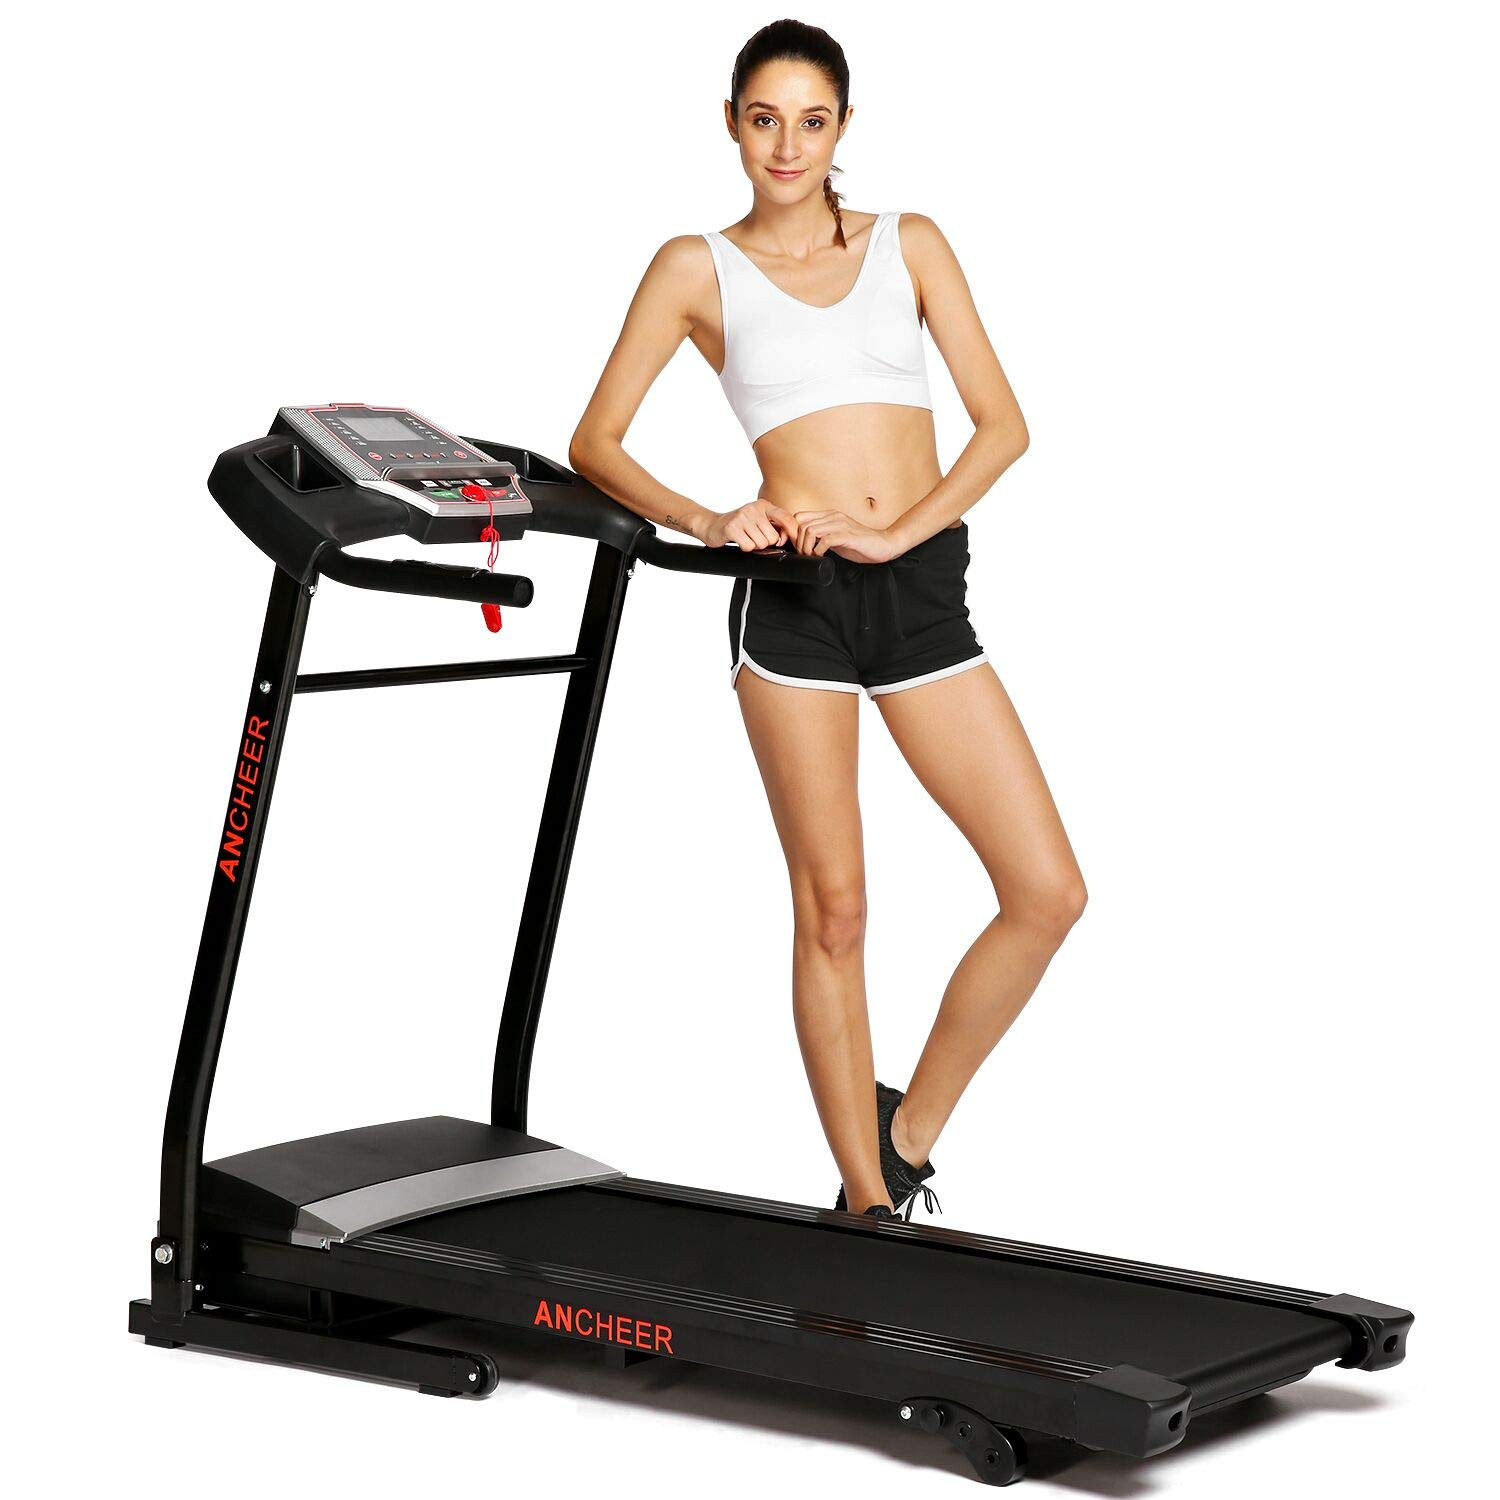 ANCHEER Treadmill, APP Control Electric Folding Treadmills (Black) (Black) by ANCHEER (Image #1)